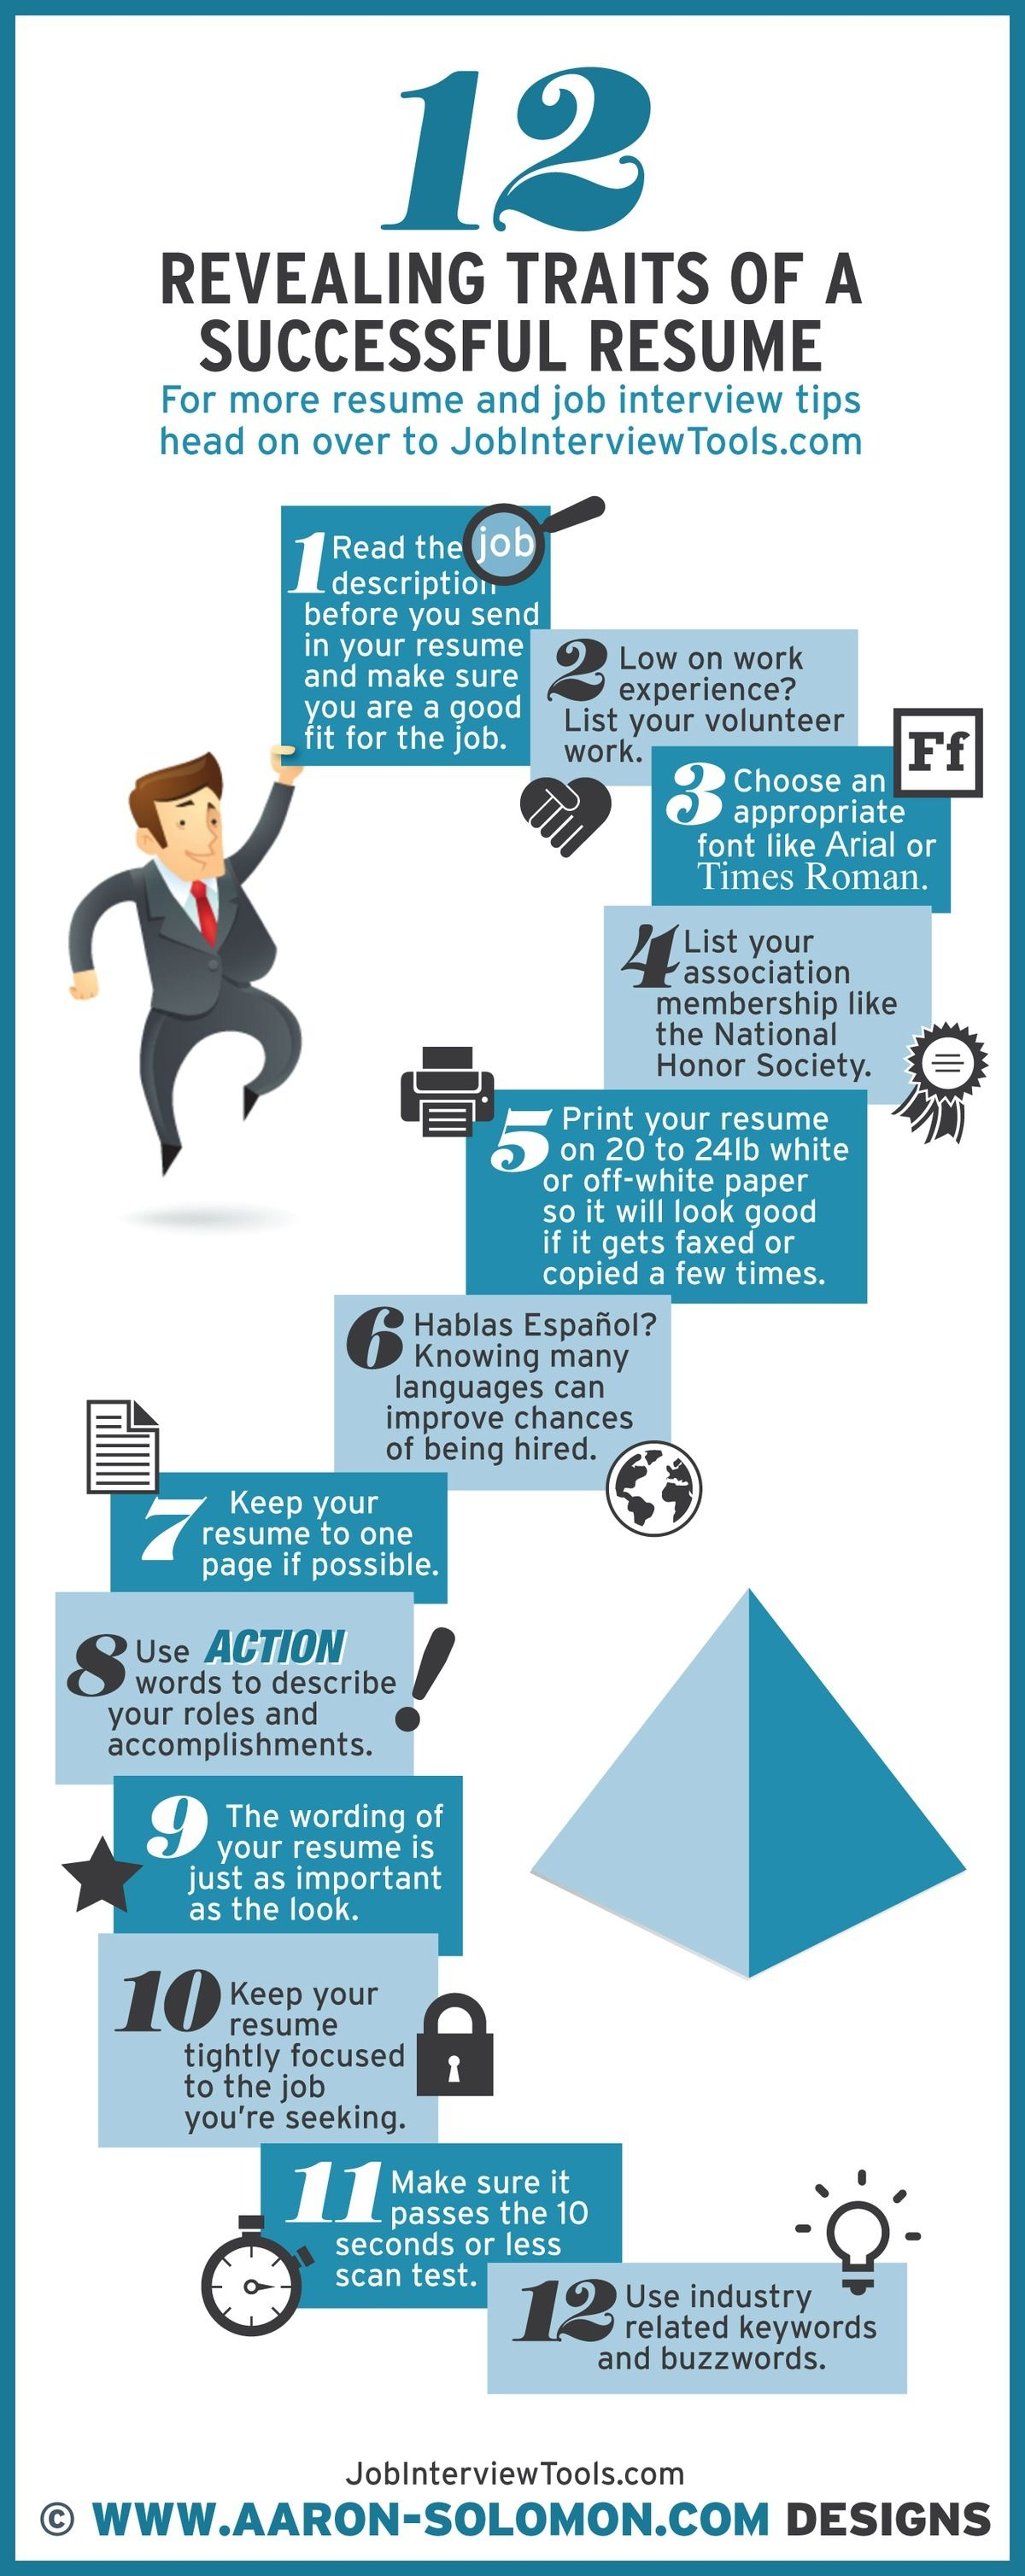 Infographic Infographic : 12 Revealing Traits Of A Successful Resume. Image  Description Infographic : 12 Revealing Traits Of A Successful Resume